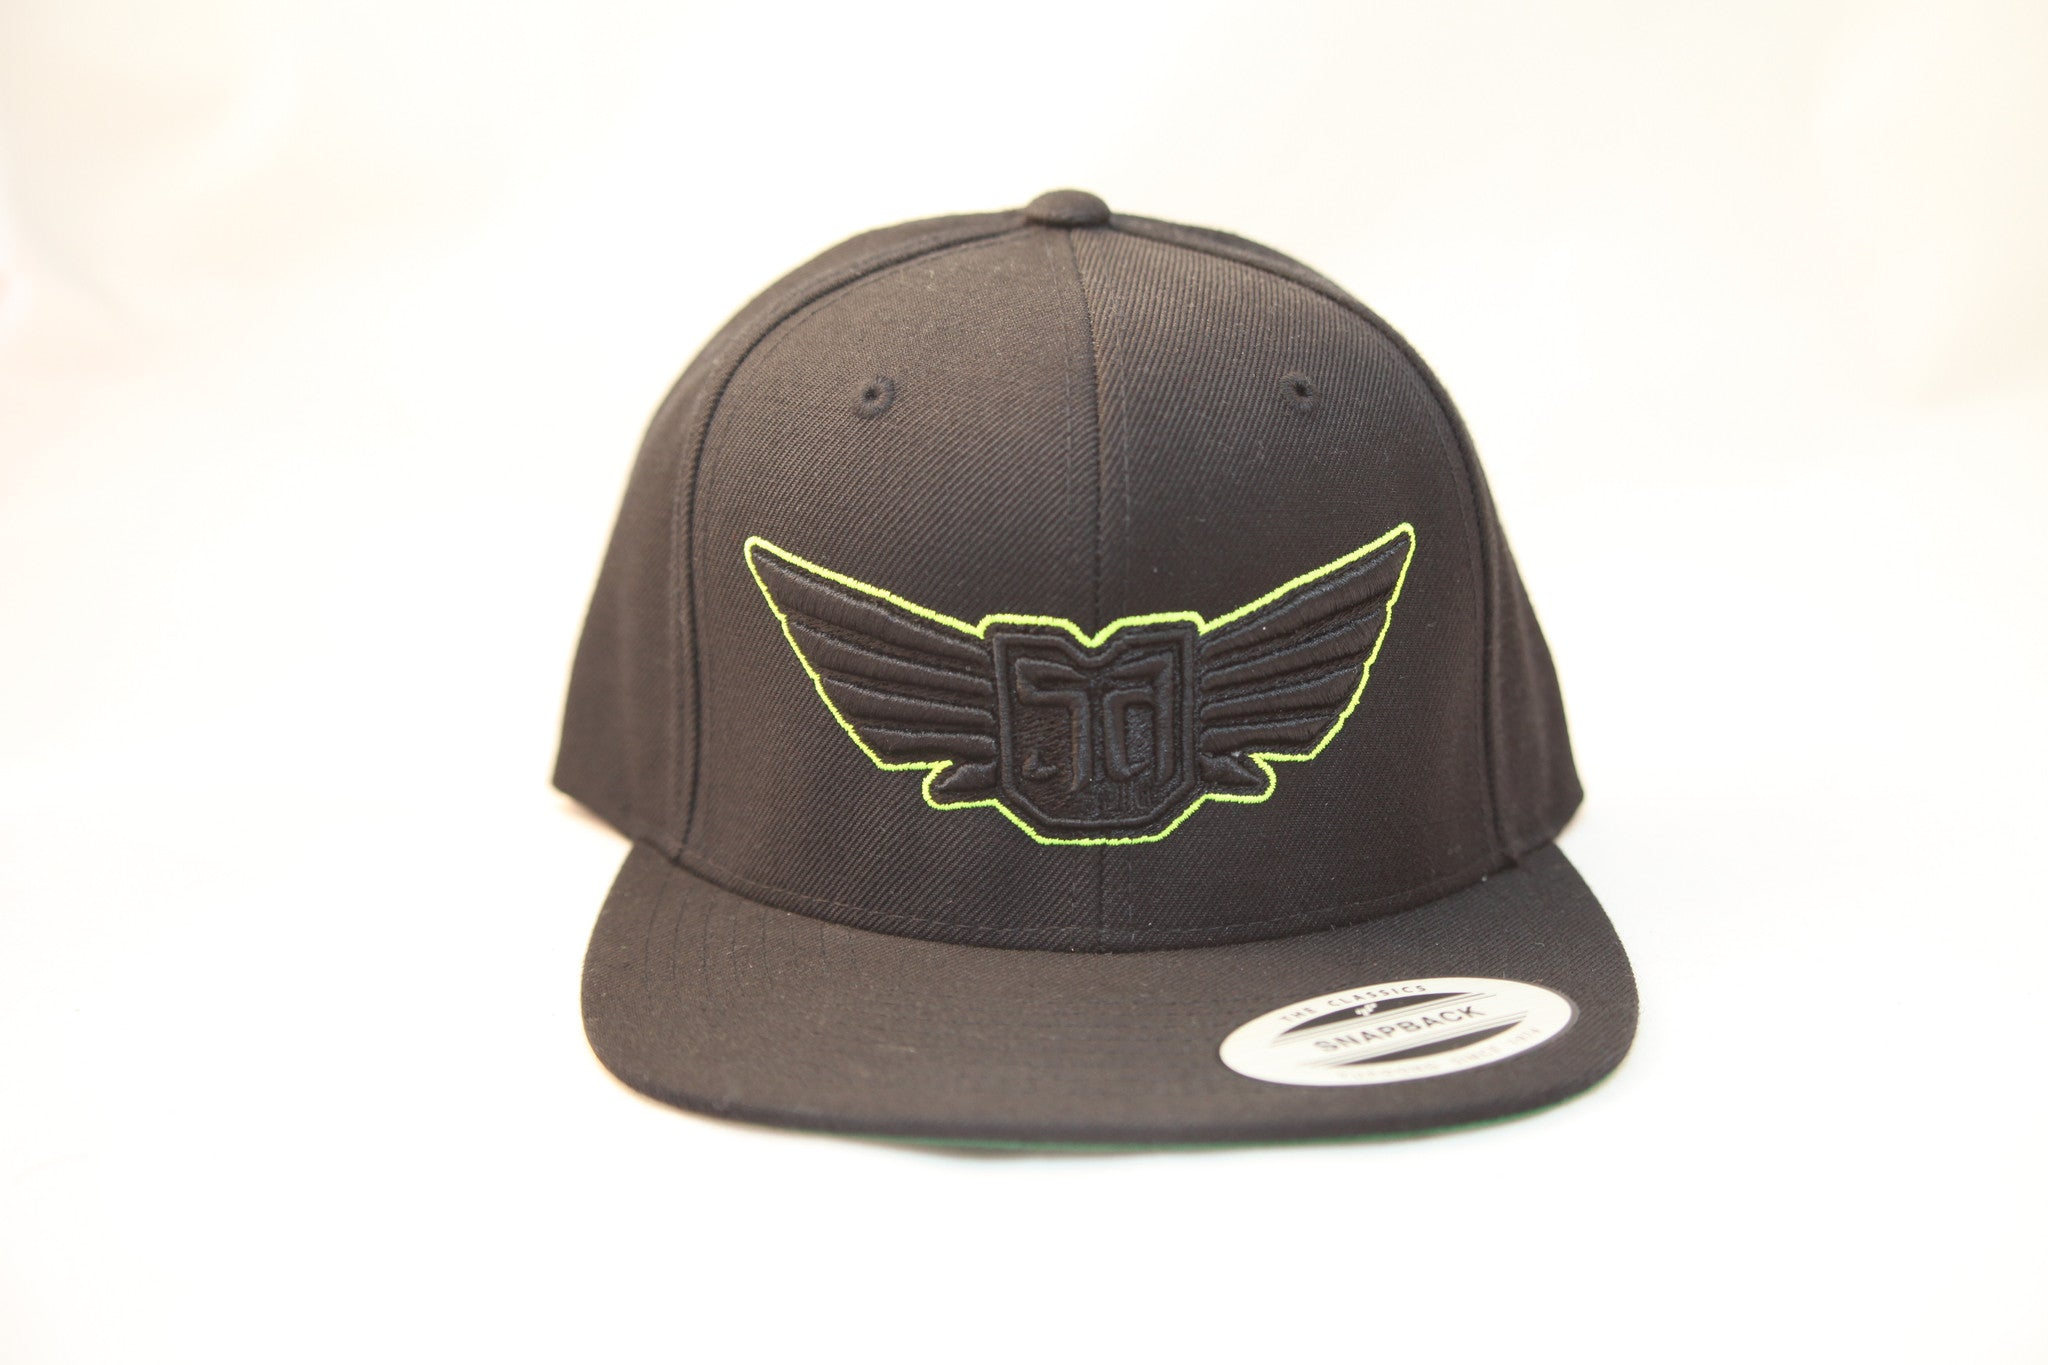 AV8 - FLEXFIT SNAP BACK HAT - BLACK - BLK / GRN LOGO